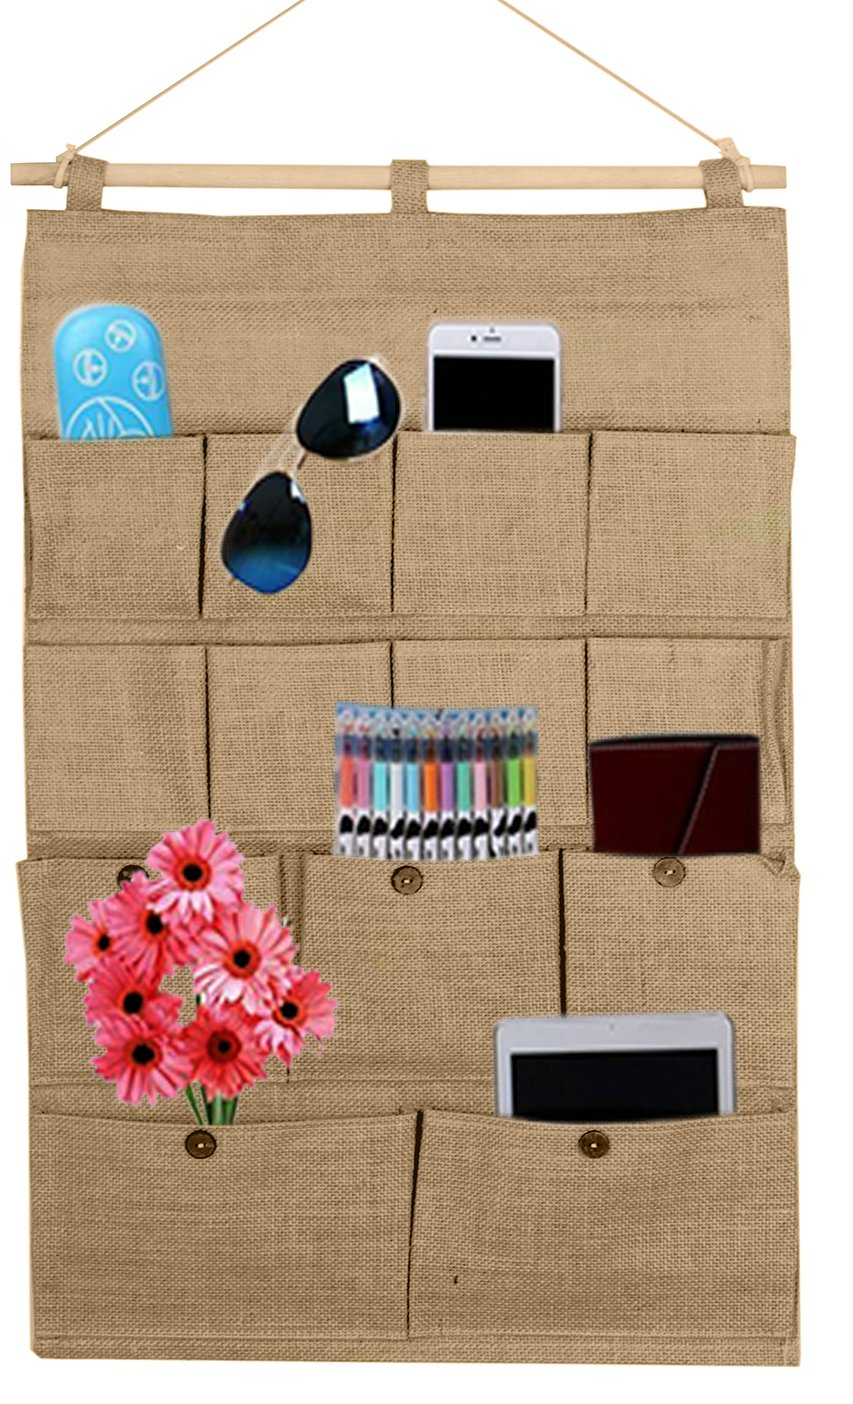 Linen/Cotton Fabric 13 Pockets Wall Door Closet Hanging Storage bag organizer,hanging shelves (brown)